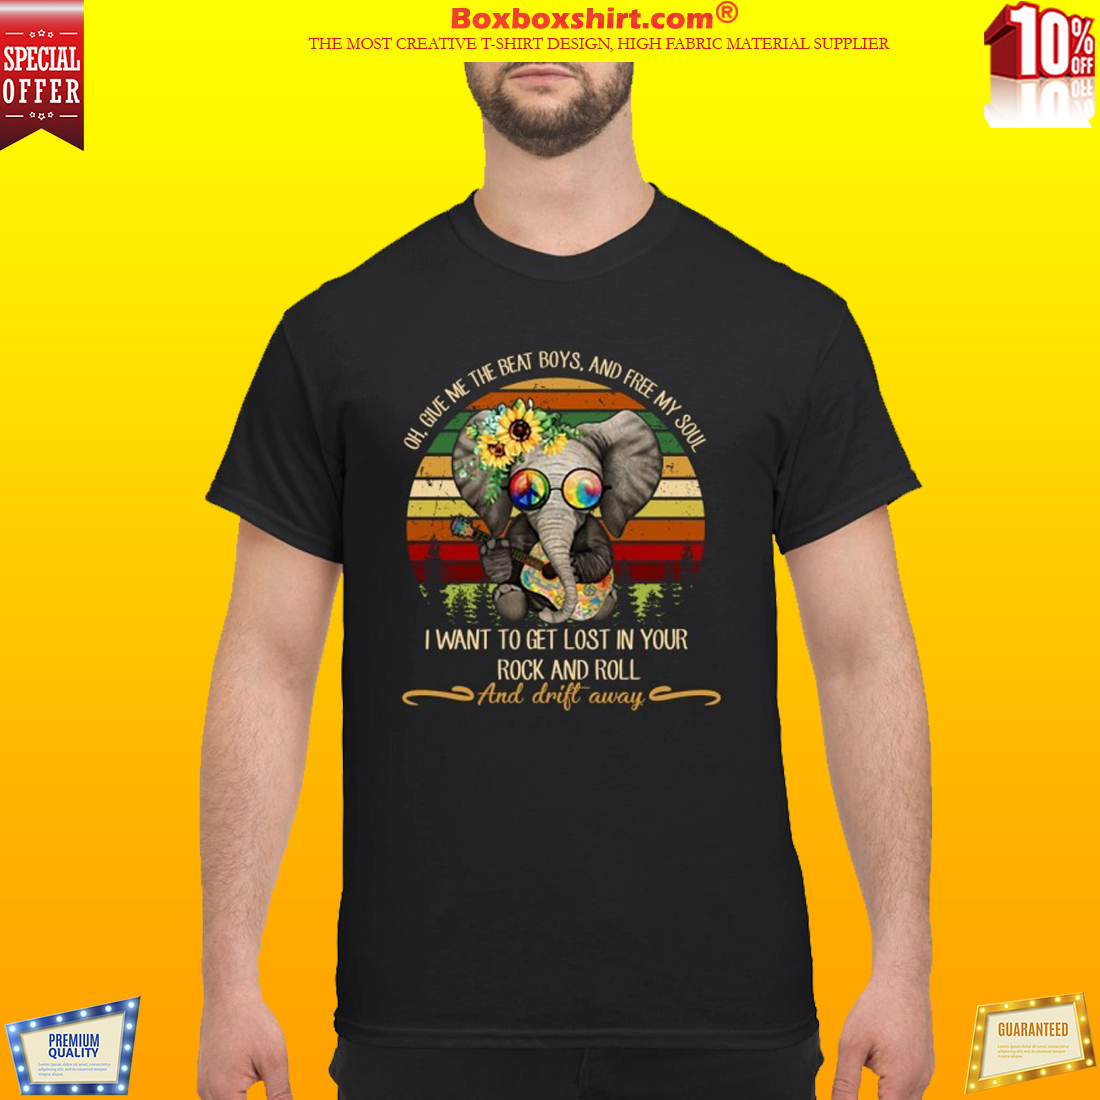 Elephant give me the beat boys my soul lost in your rock and roll drift away shirt